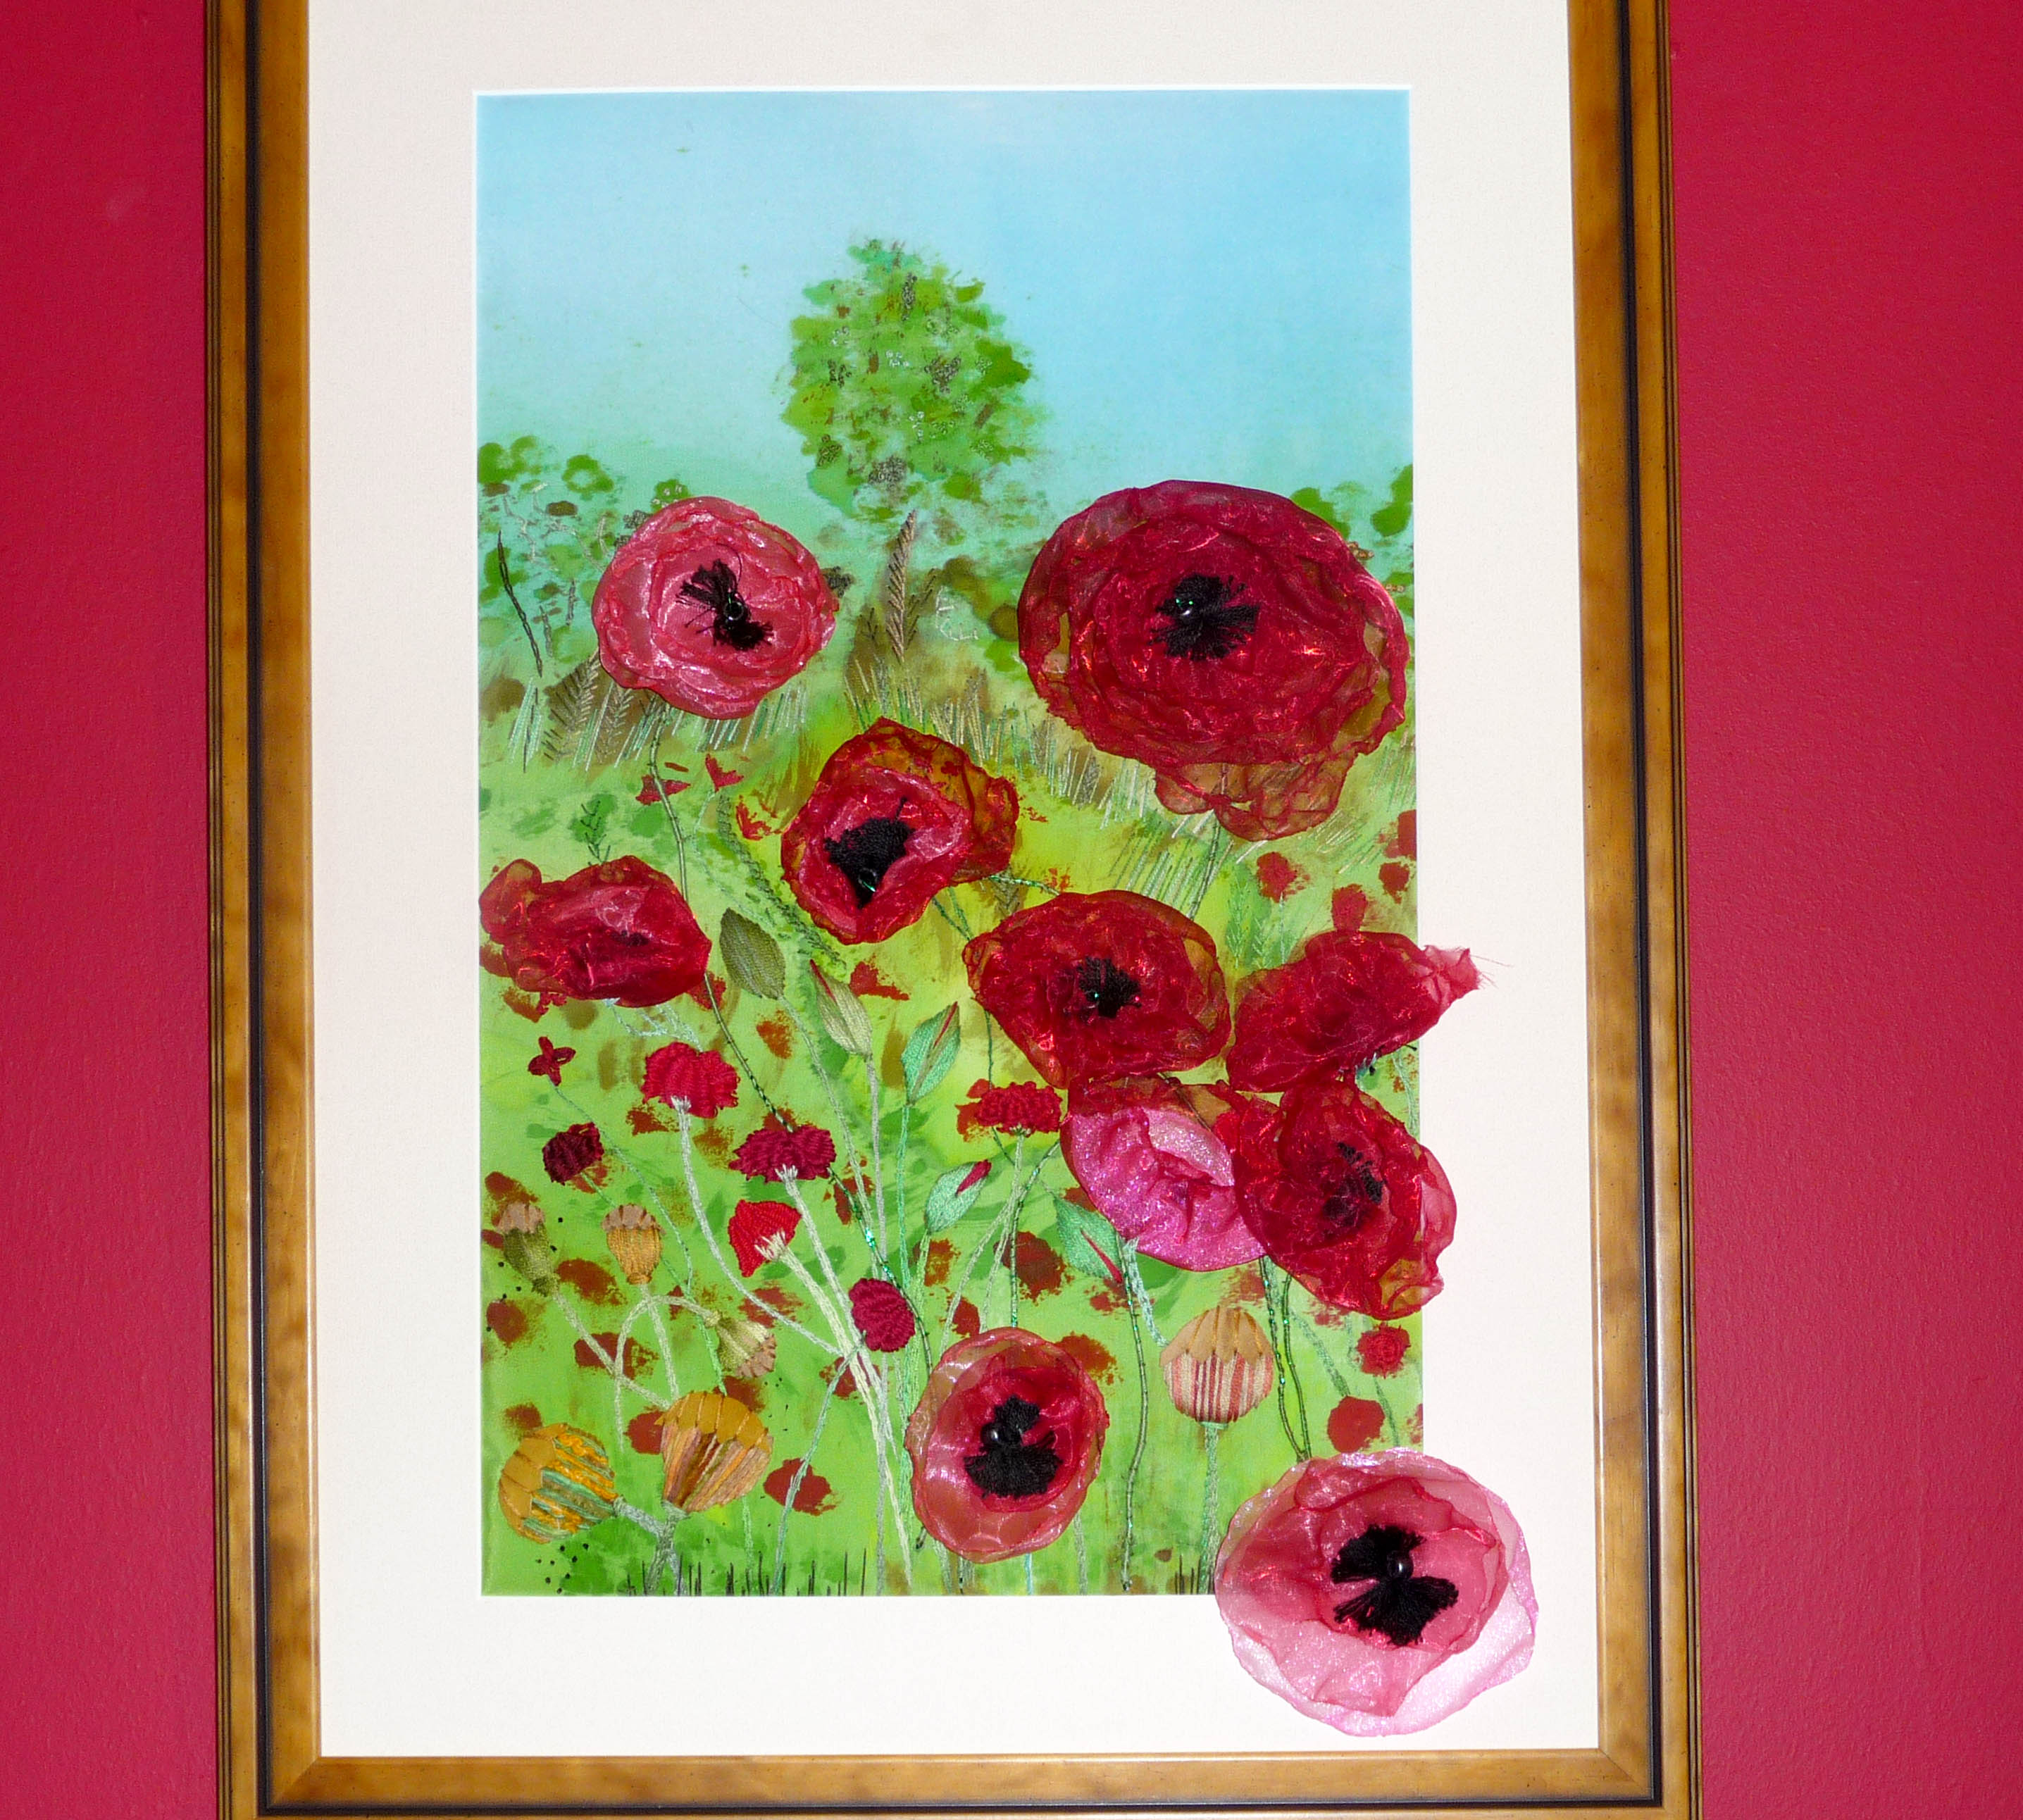 POPPIES, 2014, by Vicky Williams, hand embroidery with applied fabrics